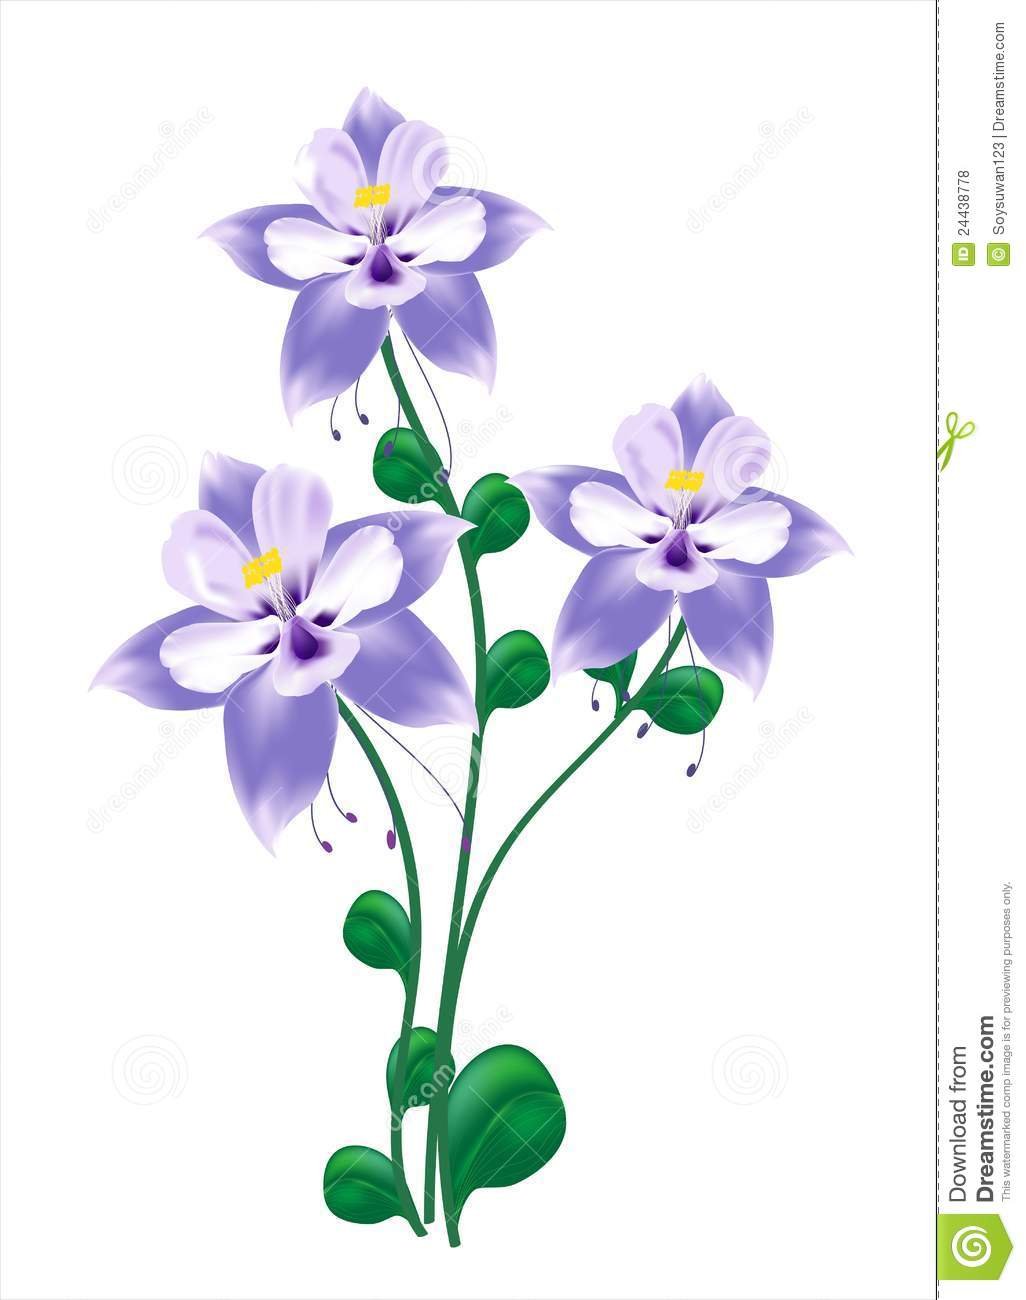 Blue columbine flower stock vector illustration of columbine 24438778 download blue columbine flower stock vector illustration of columbine 24438778 izmirmasajfo